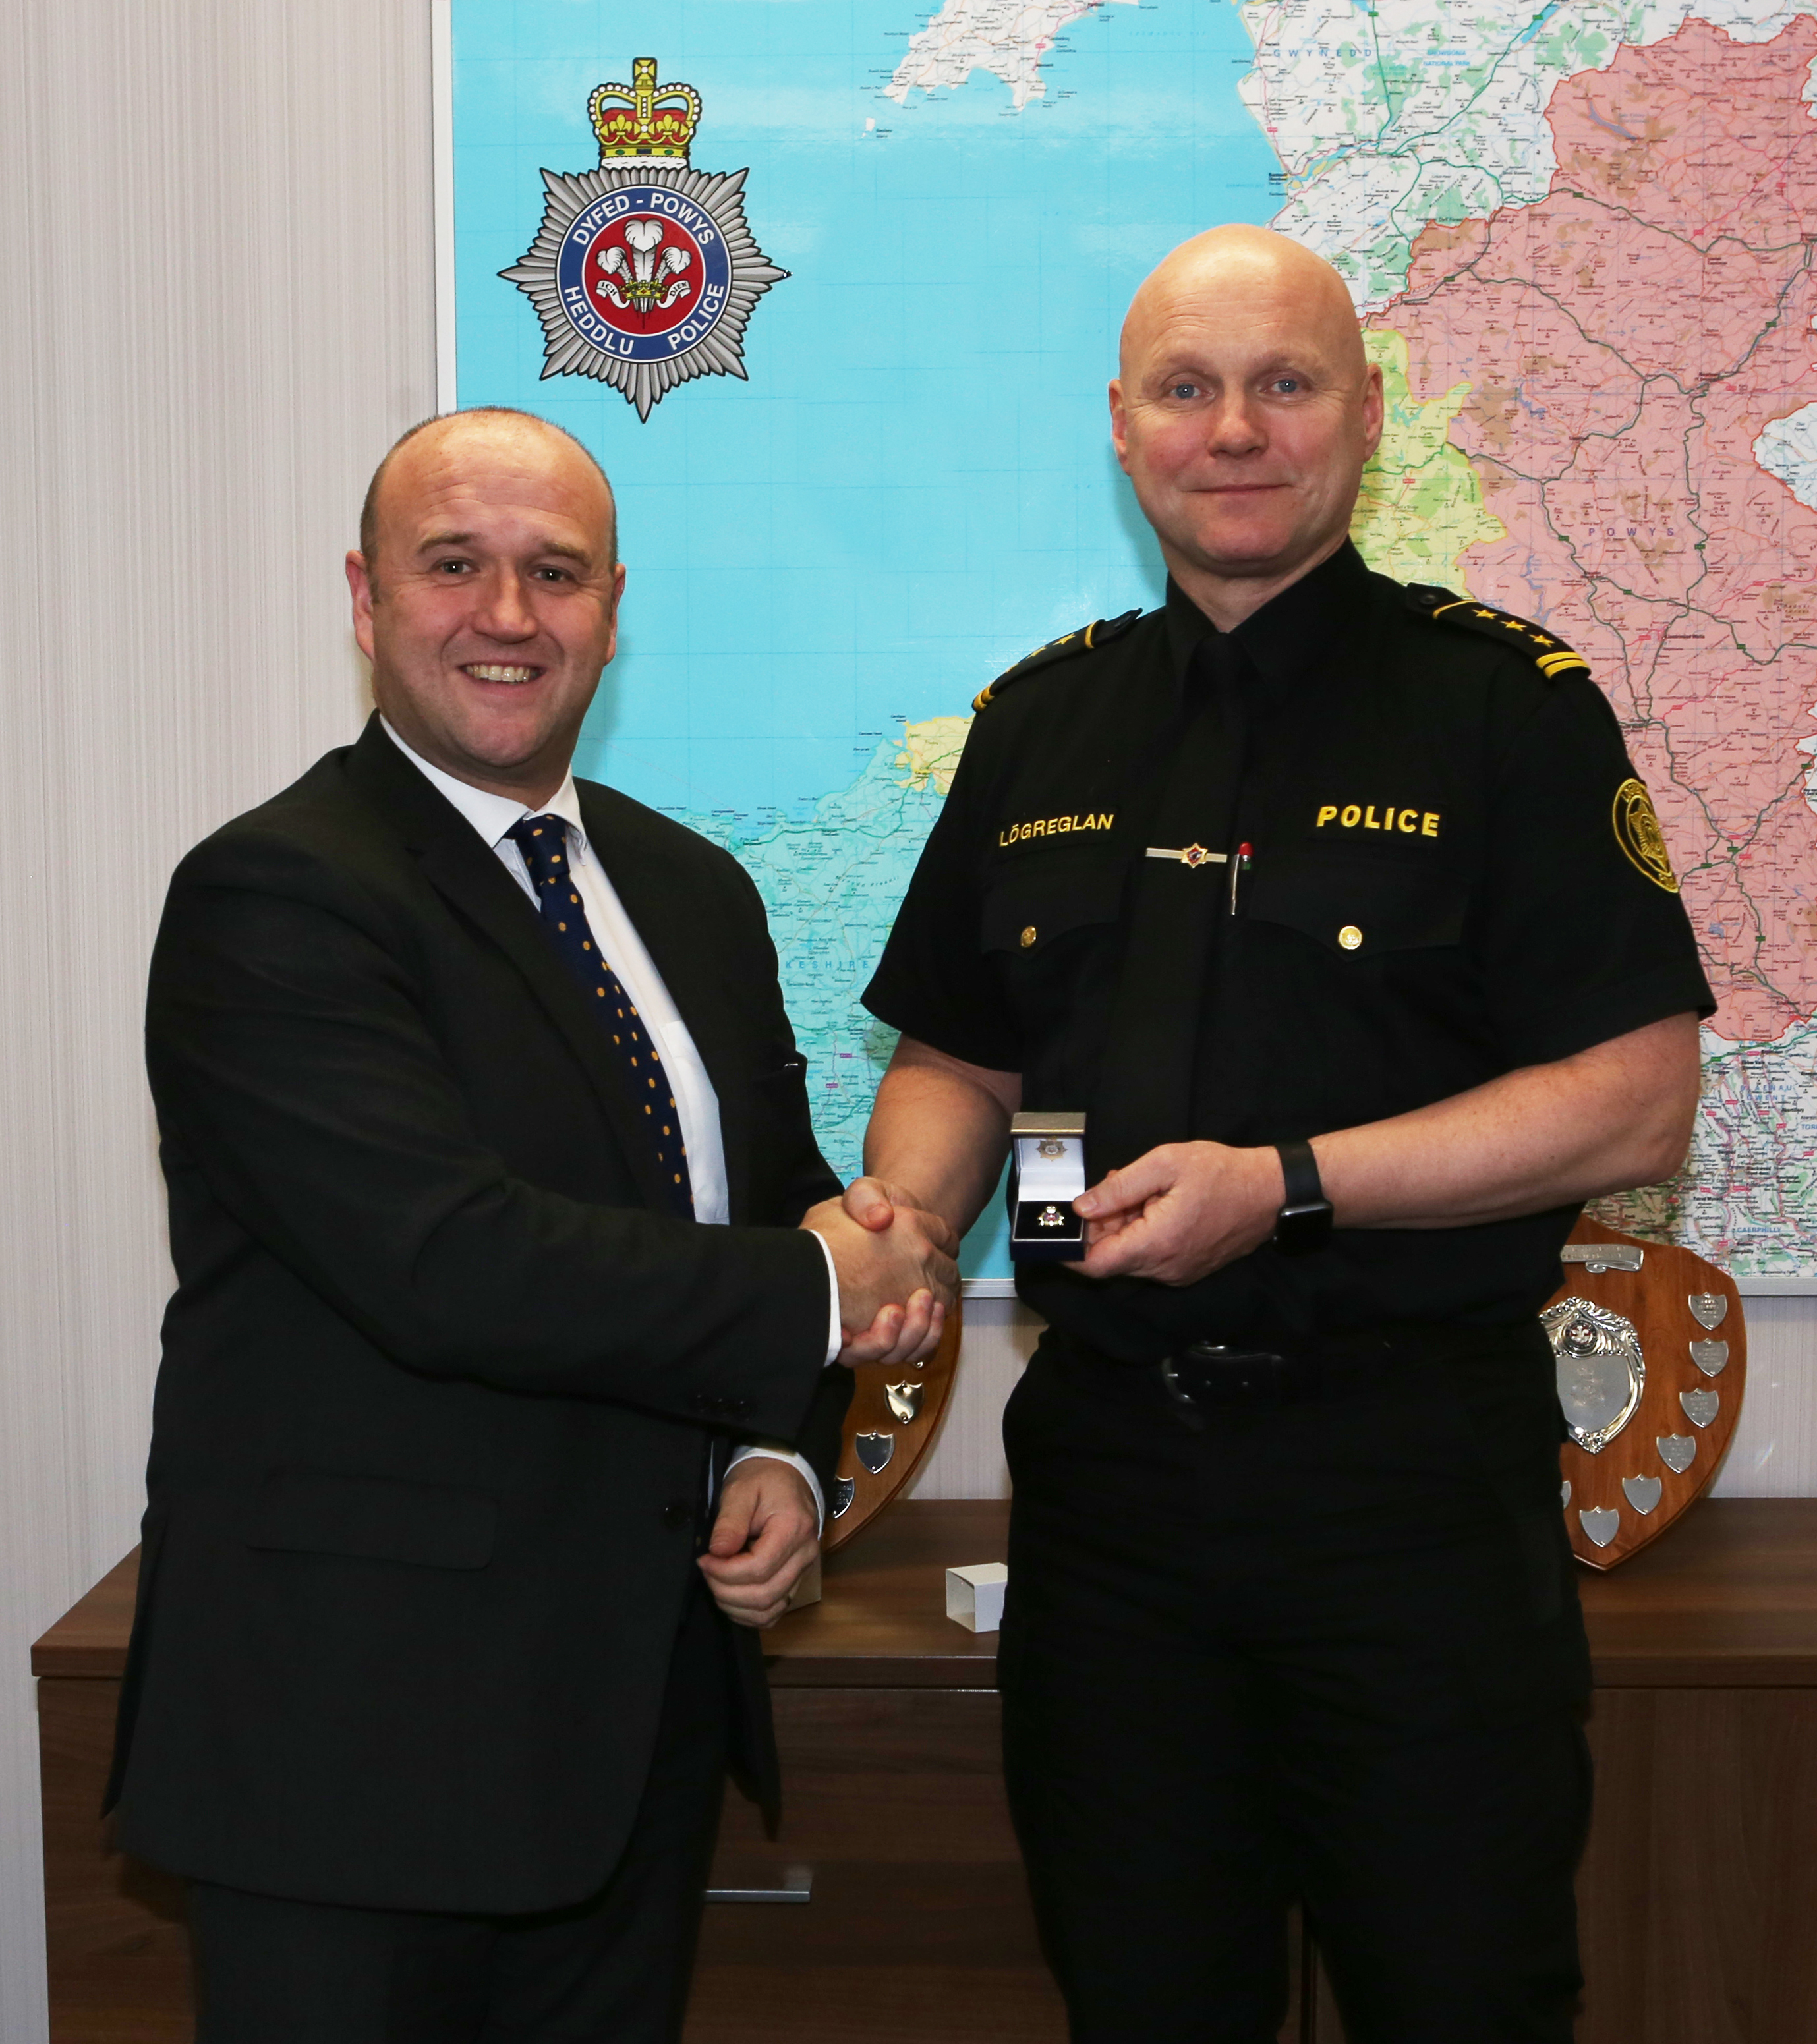 PCC Dafydd Llywelyn and Chief Superintendent Thorhallur Ólafsson Icelandic Police